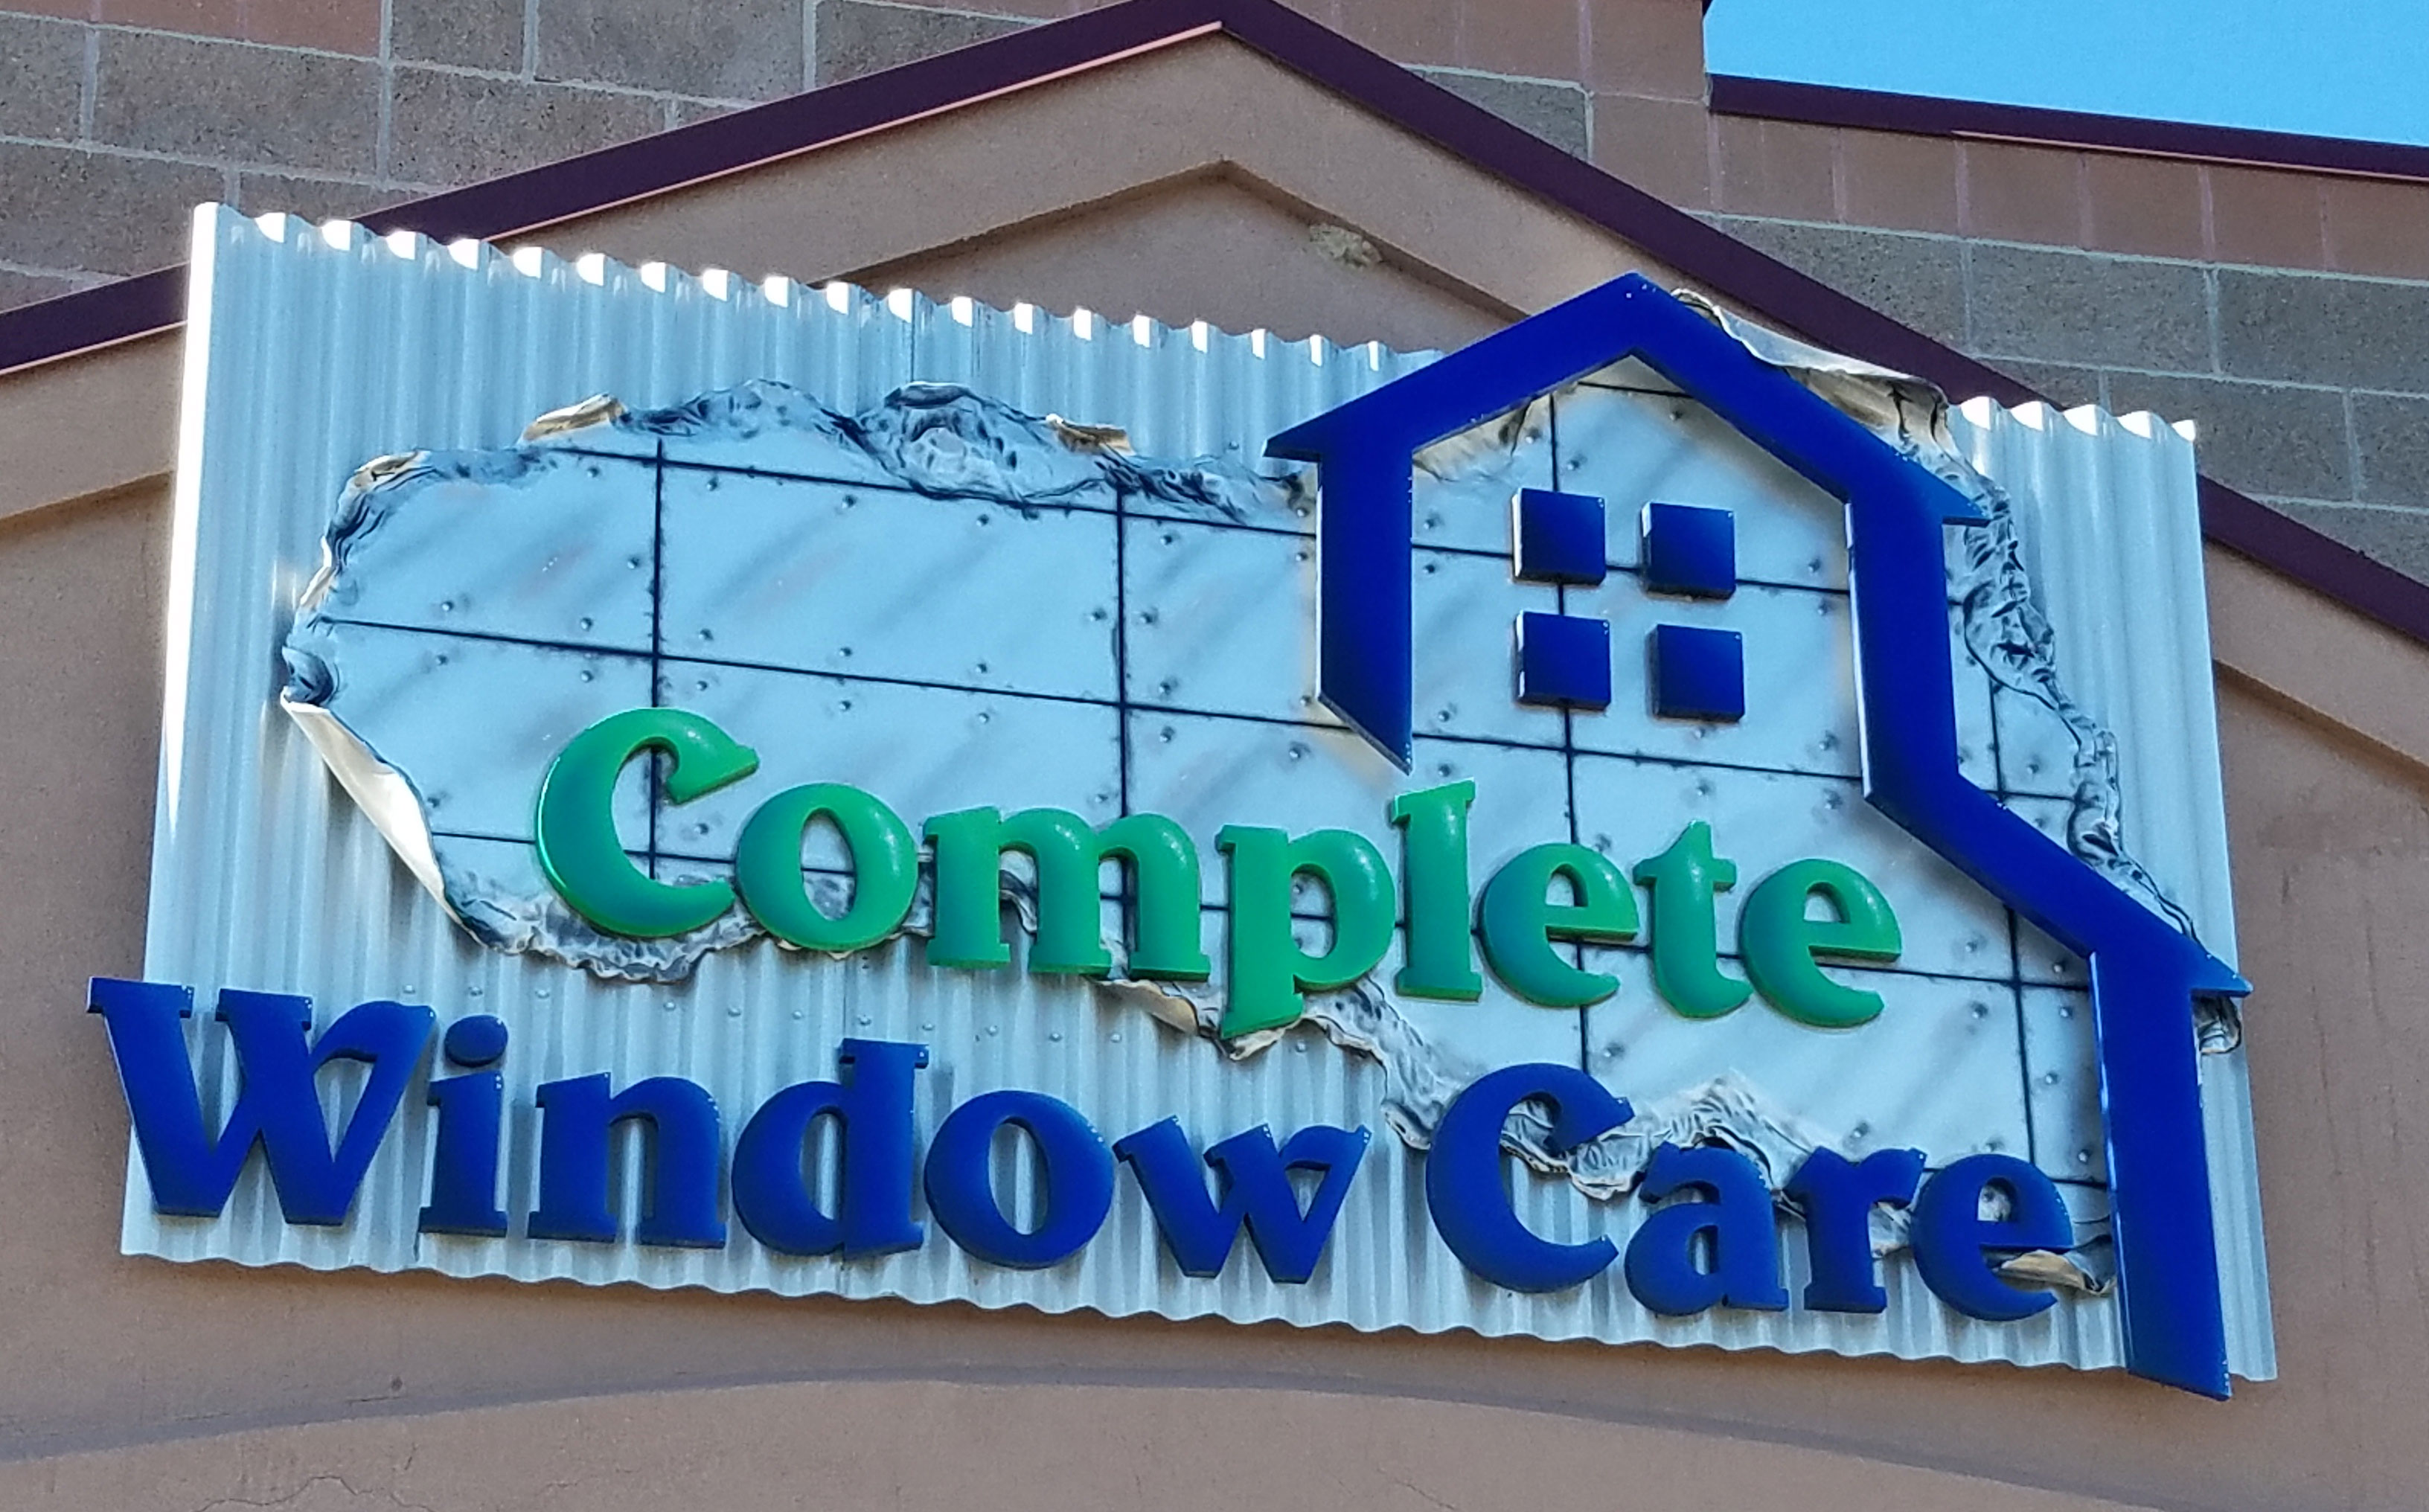 Complete windows sign